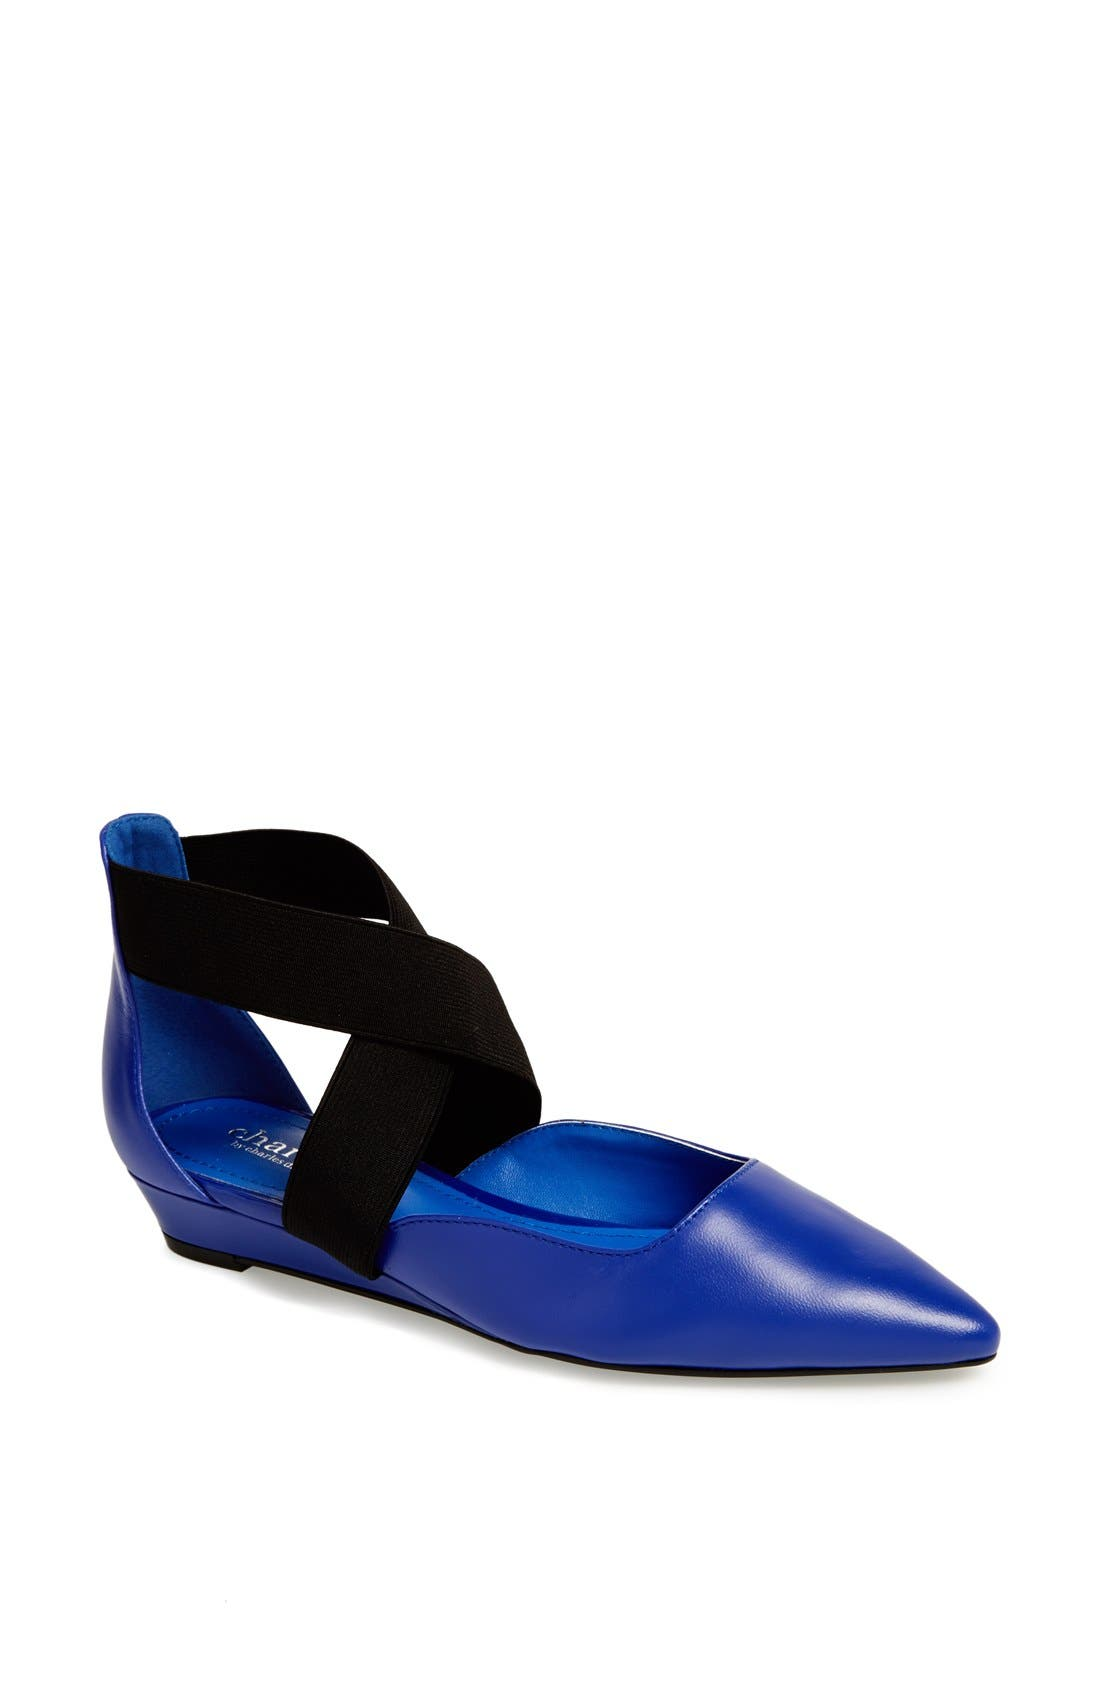 Main Image - Charles by Charles David 'Bisque' Pointy Toe Flat